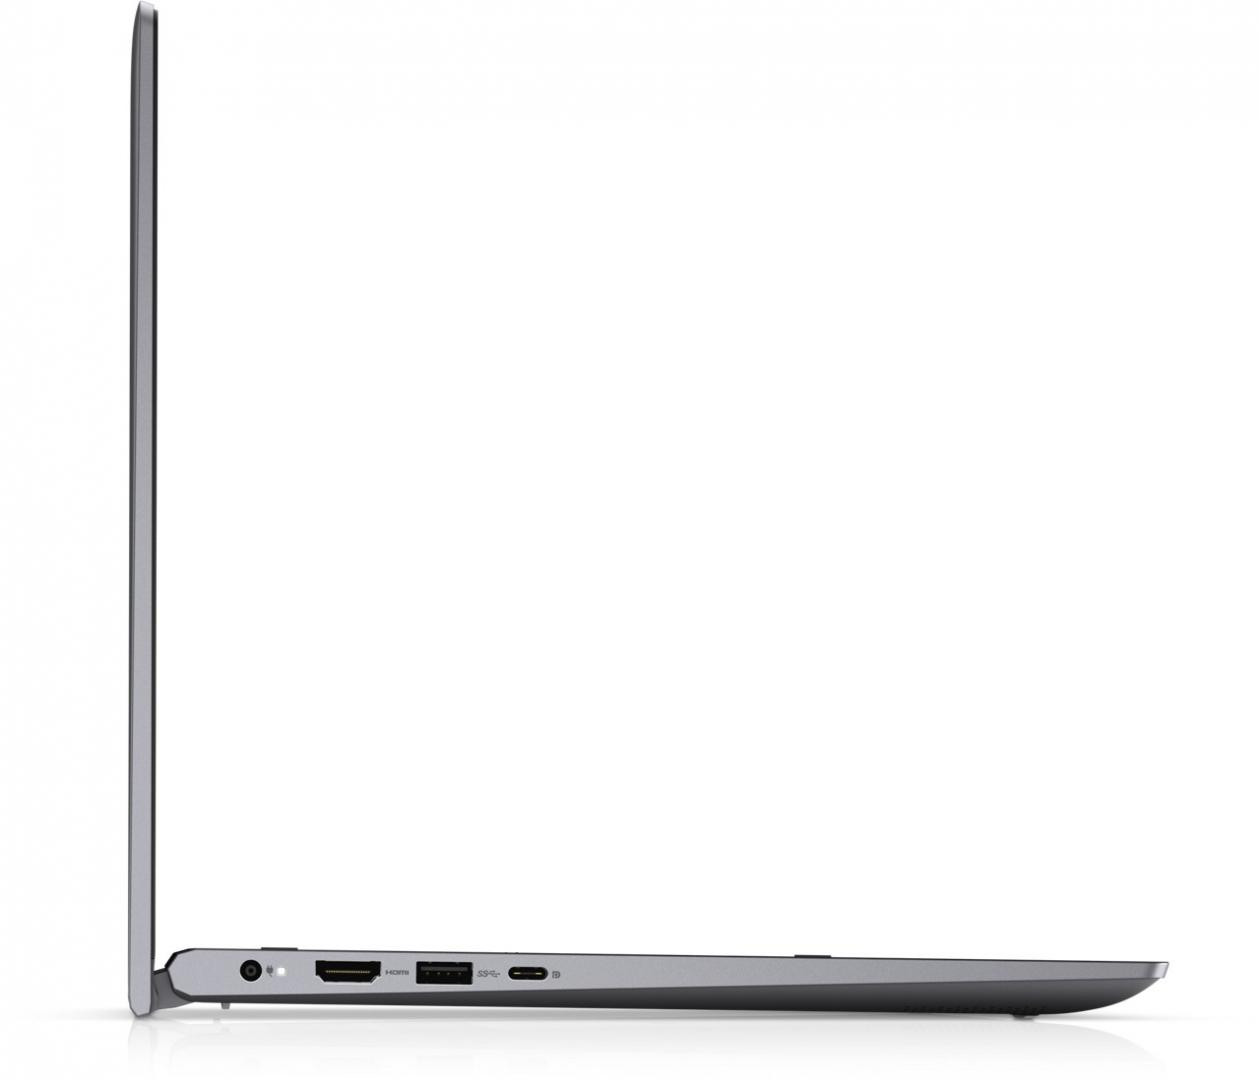 """Laptop Dell Inspiron 5406 2in1, 14.0"""" FHD, Touch, i7-1165G7, 16GB, 512GB SSD, GeForce MX330, W10 Pro - imaginea 8"""